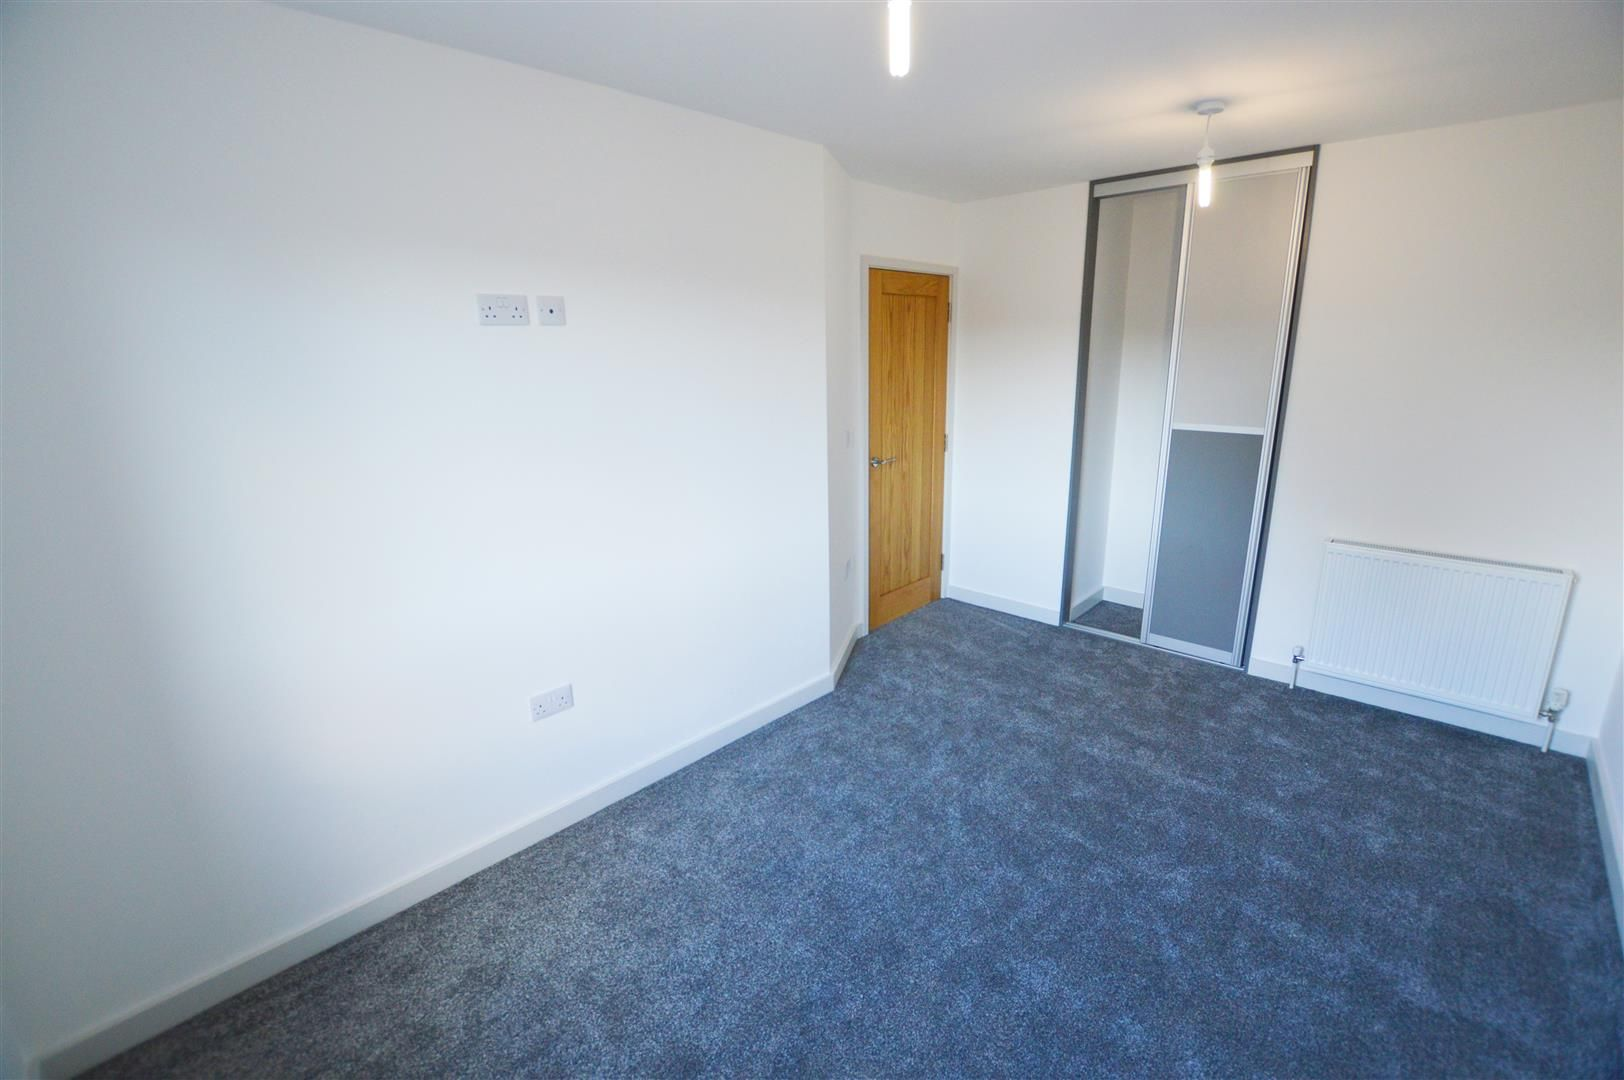 3 bed end-of-terrace for sale in Leominster 6